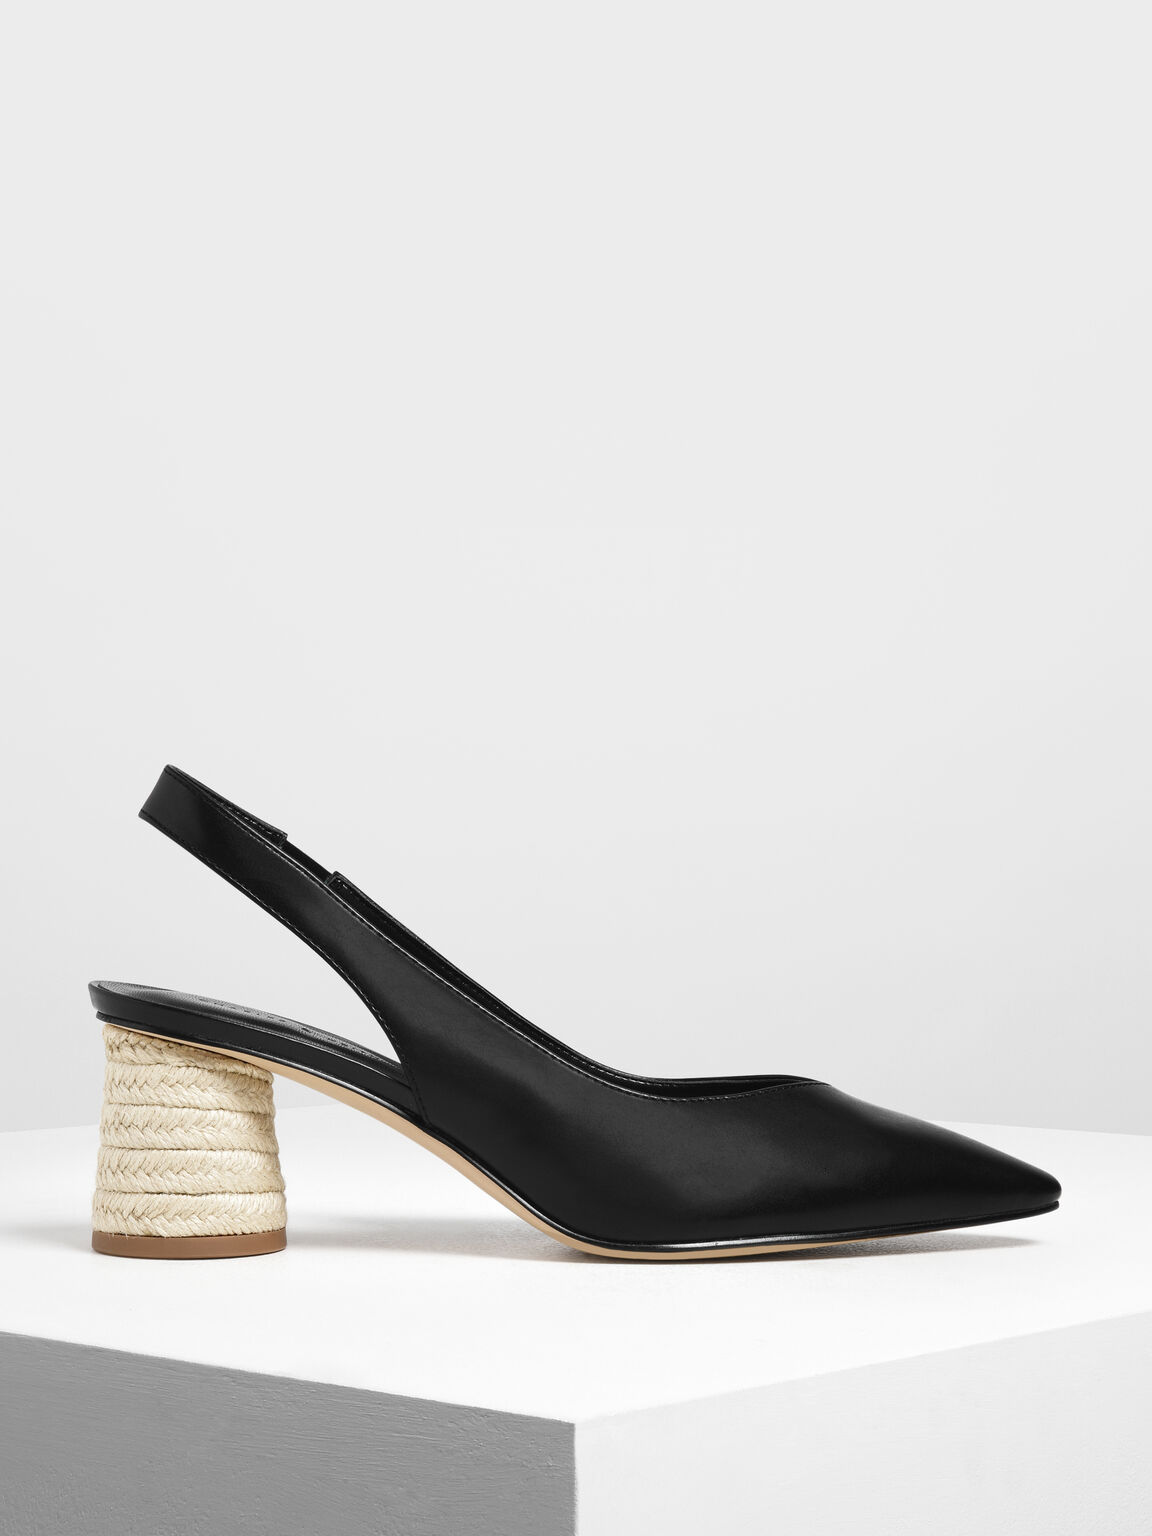 Cylindrical Espadrille Block Heel Slingbacks, Black, hi-res